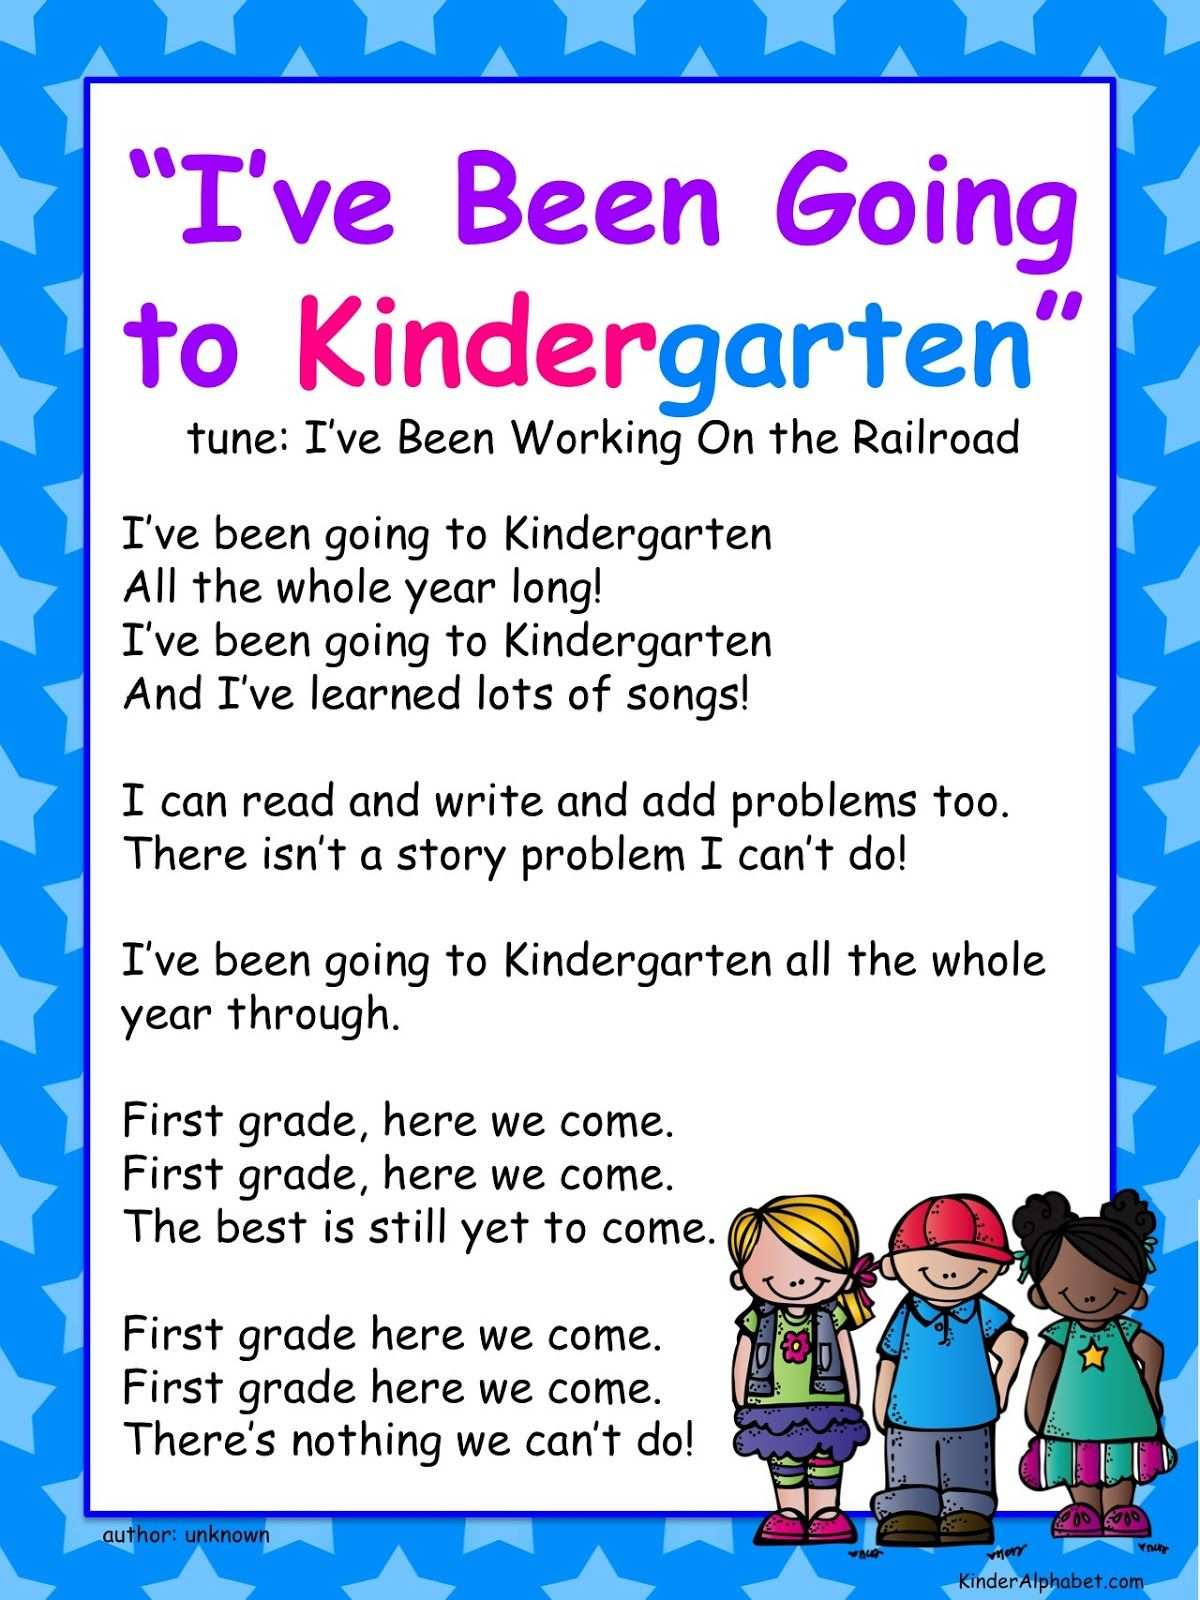 Kindergarten graduation scrapbook ideas